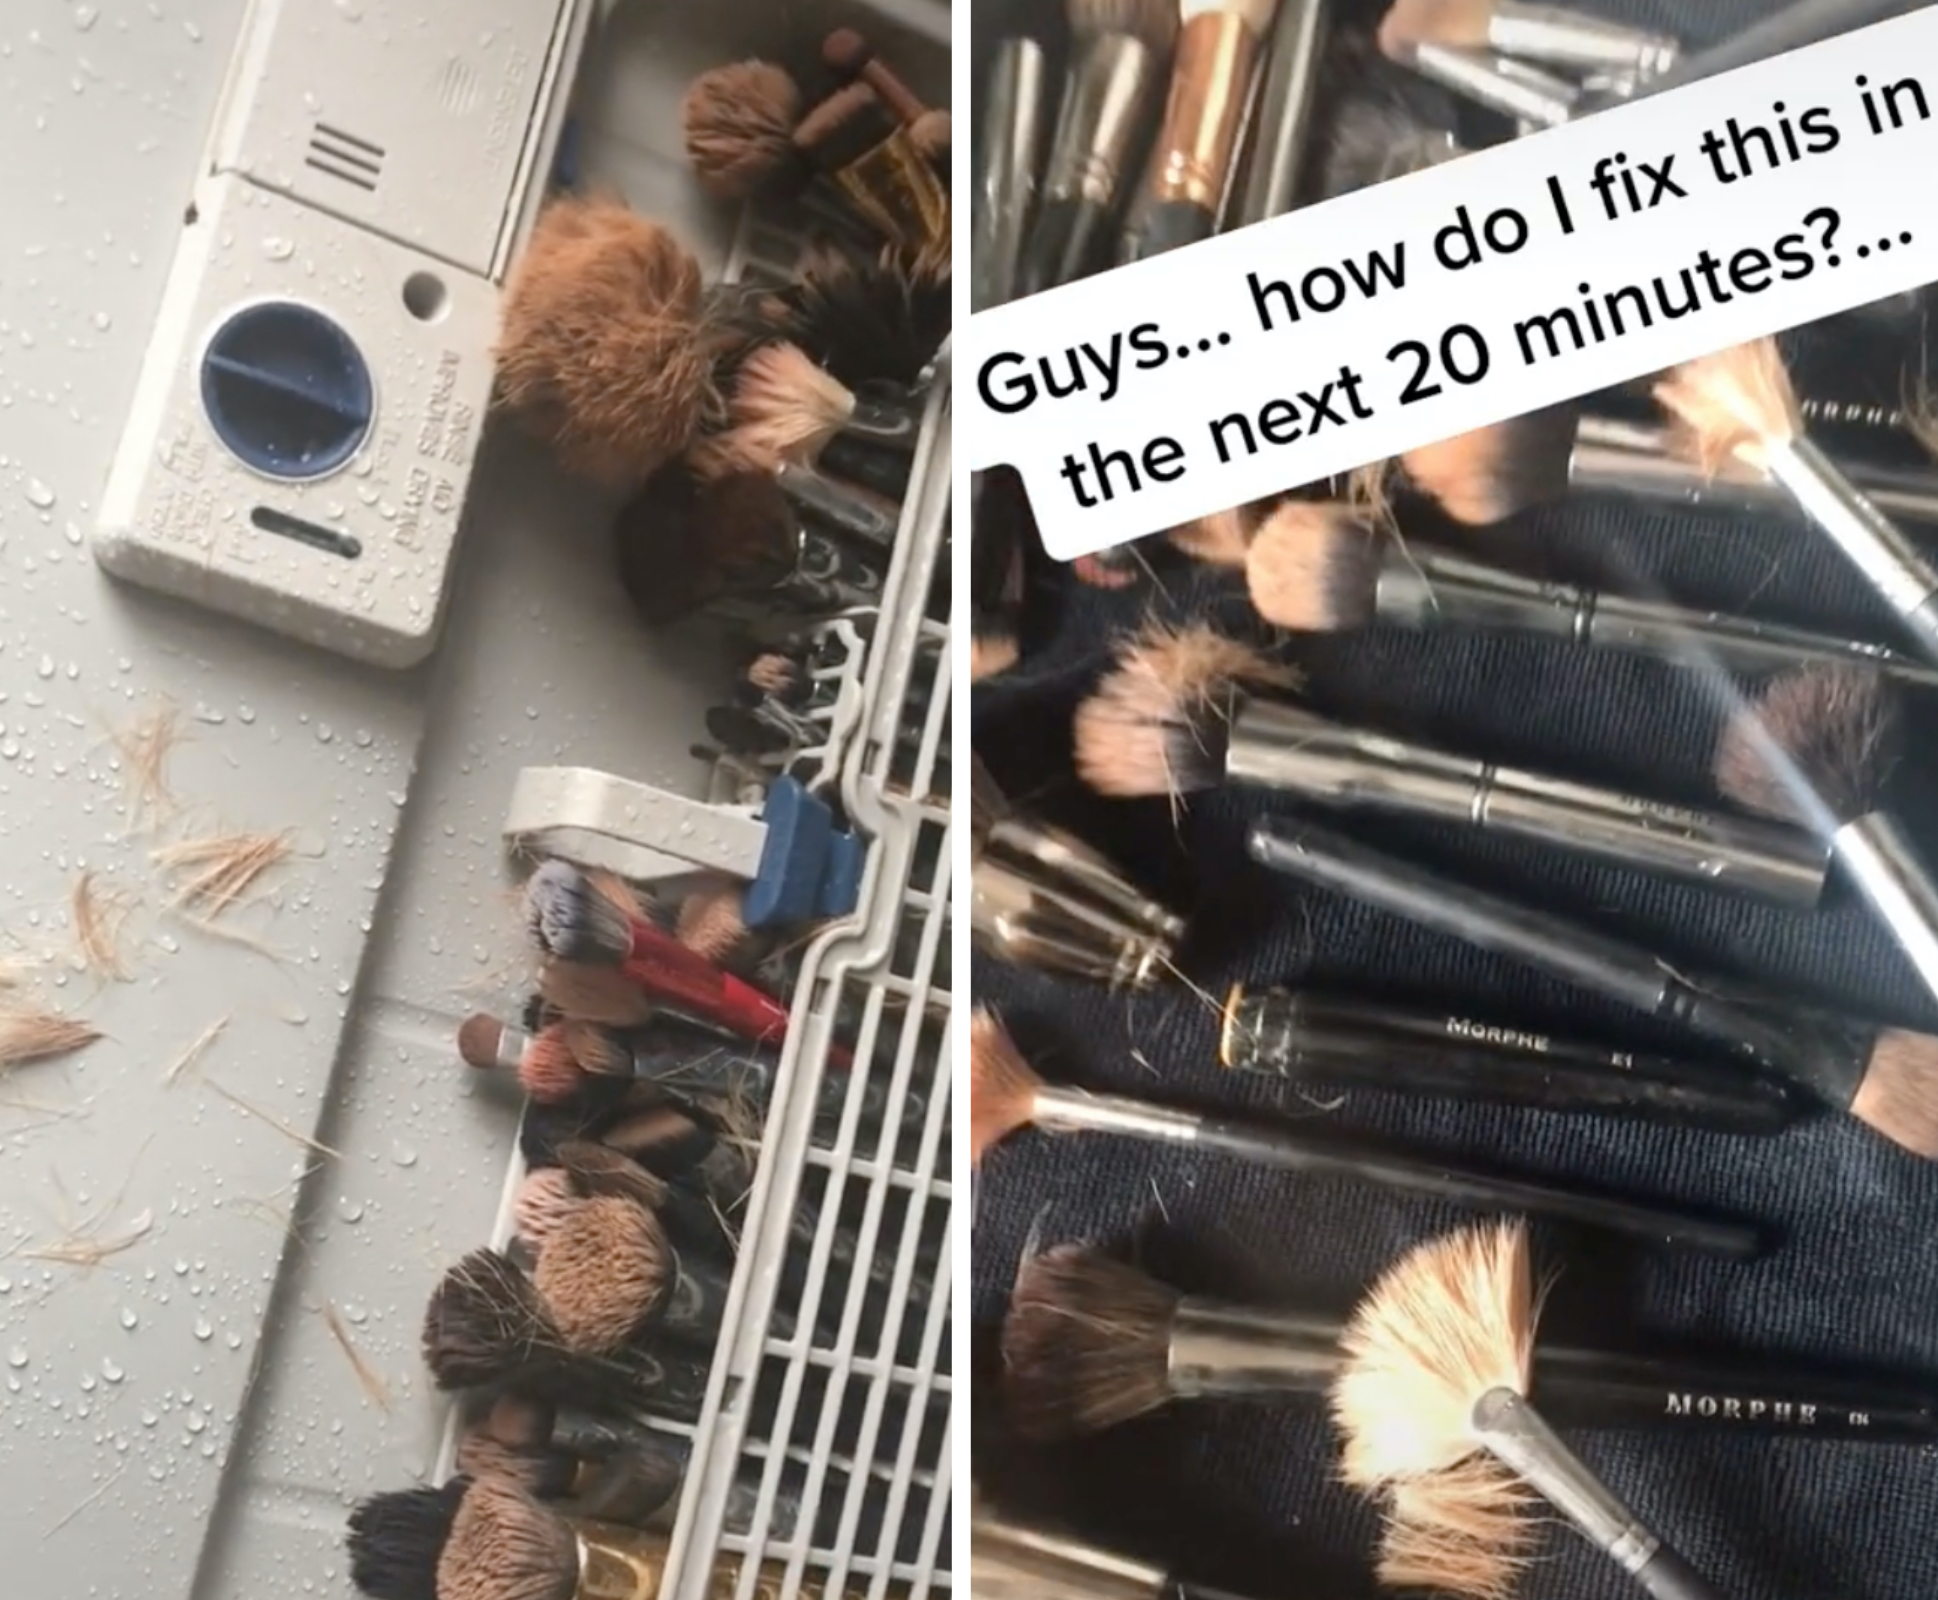 Man destroys wife's expensive makeup brush collection in dishwasher